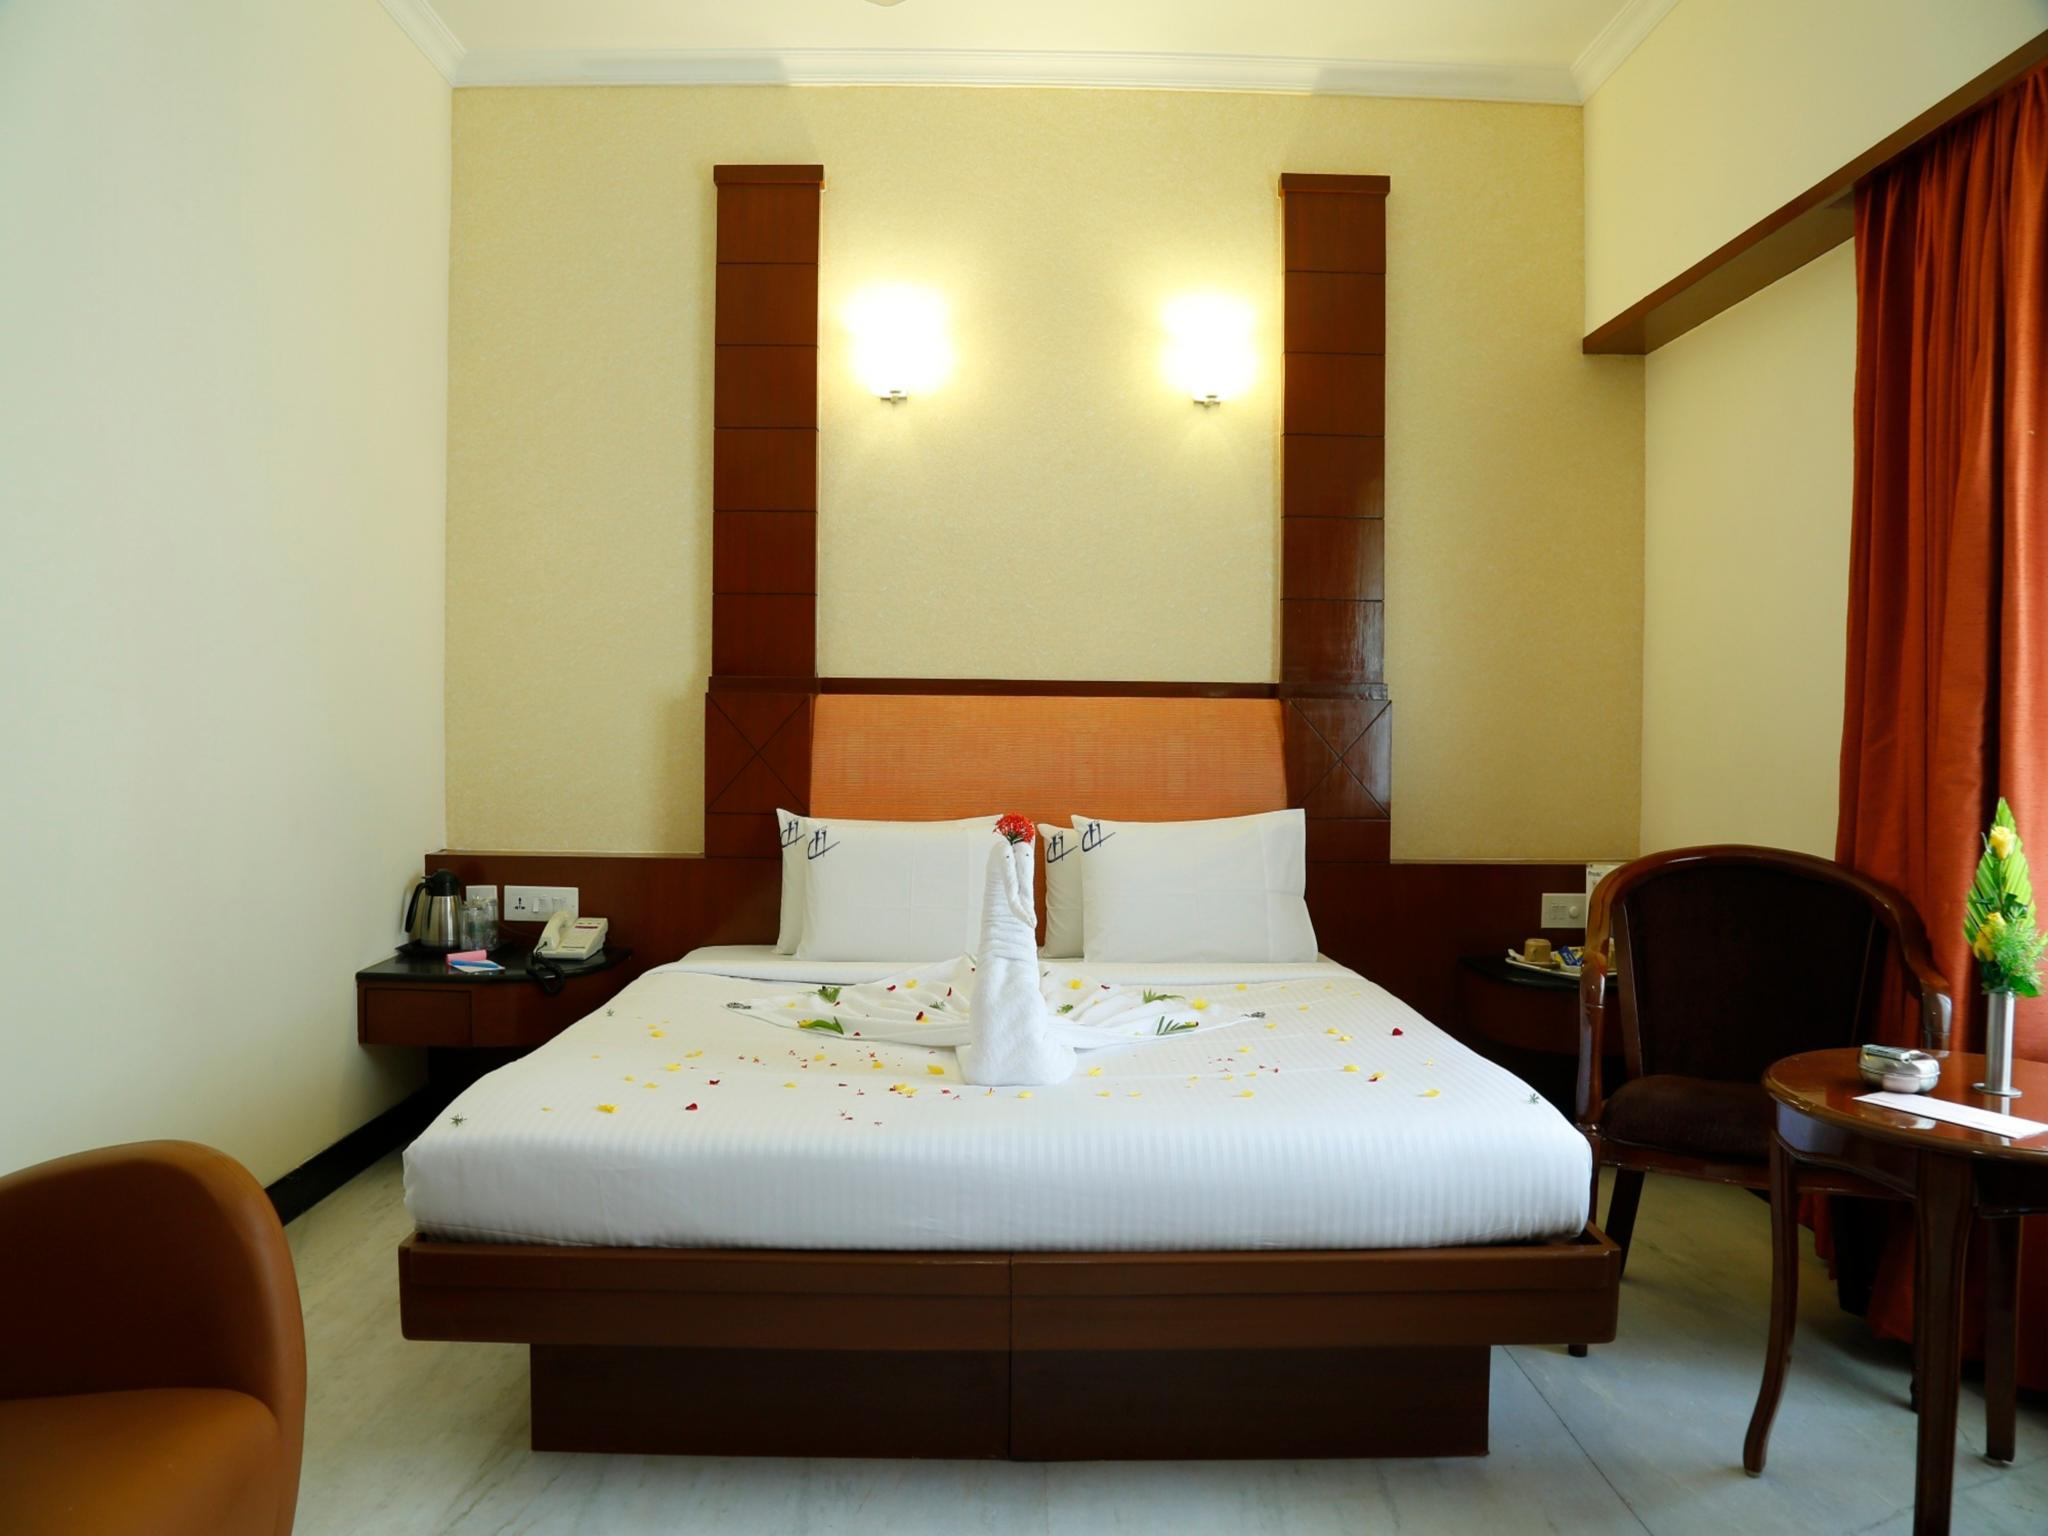 Best Price On Hotel Chennai Deluxe In Chennai Reviews # Plasma De Luxe